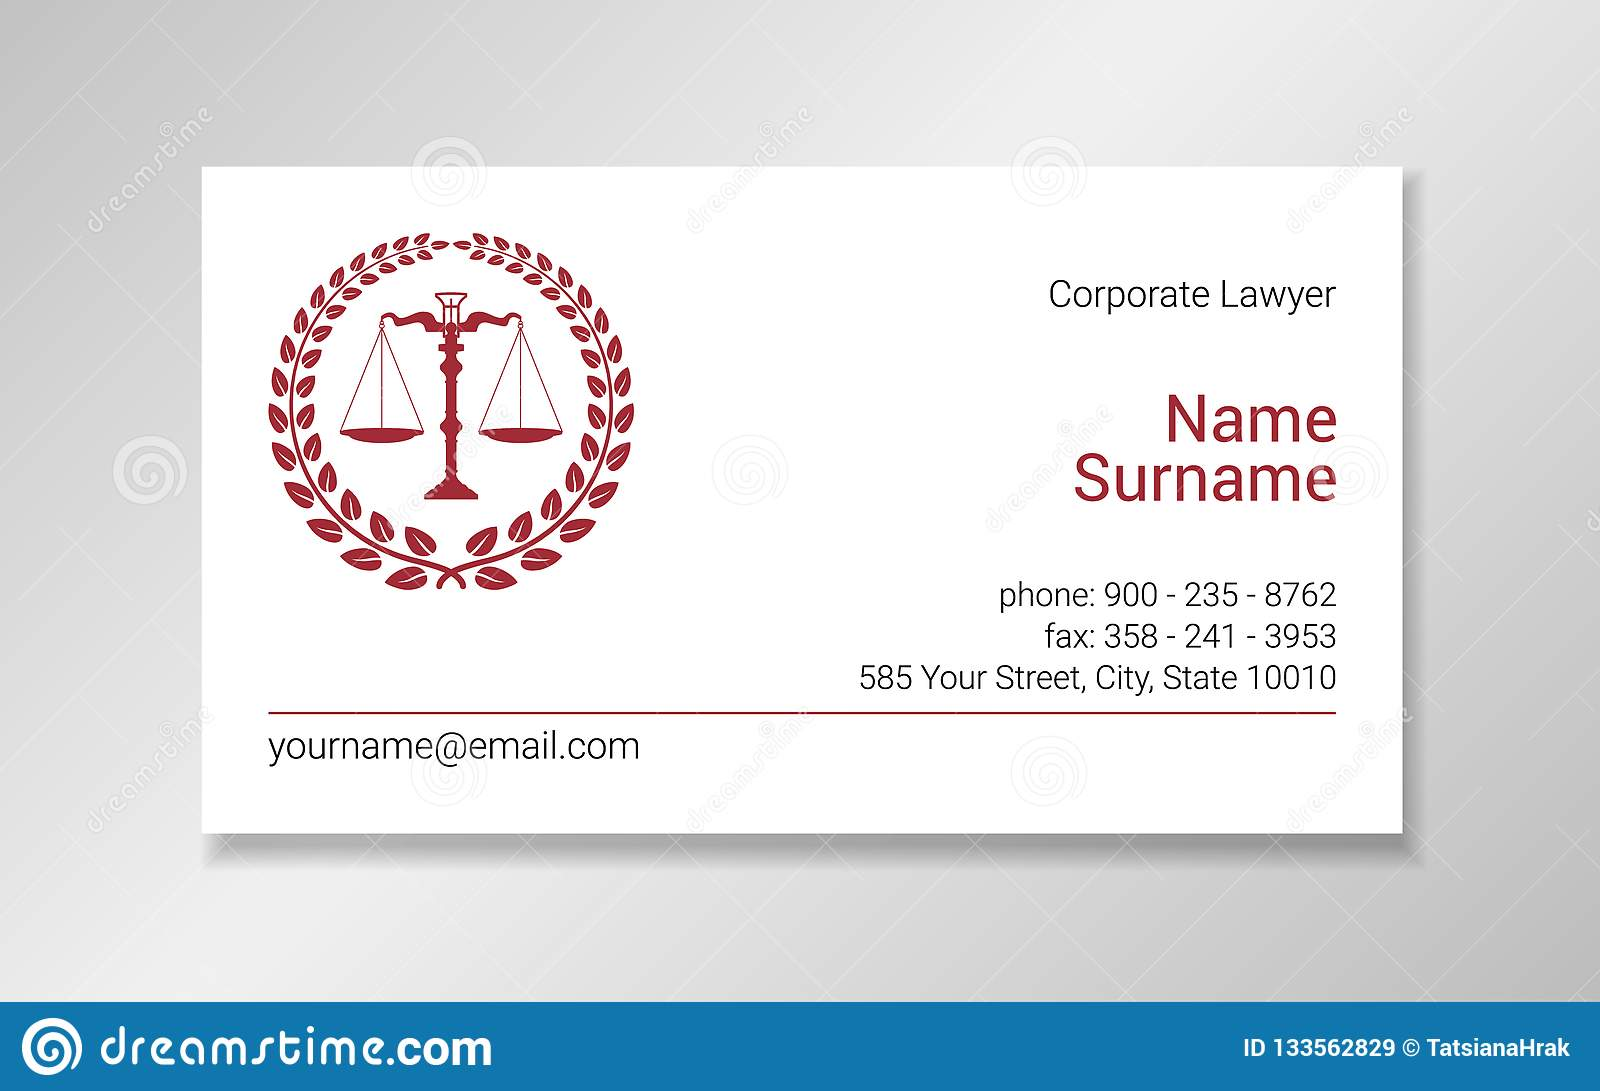 Lawyer Business Card Design Template With Burgundy Scales Silhouette